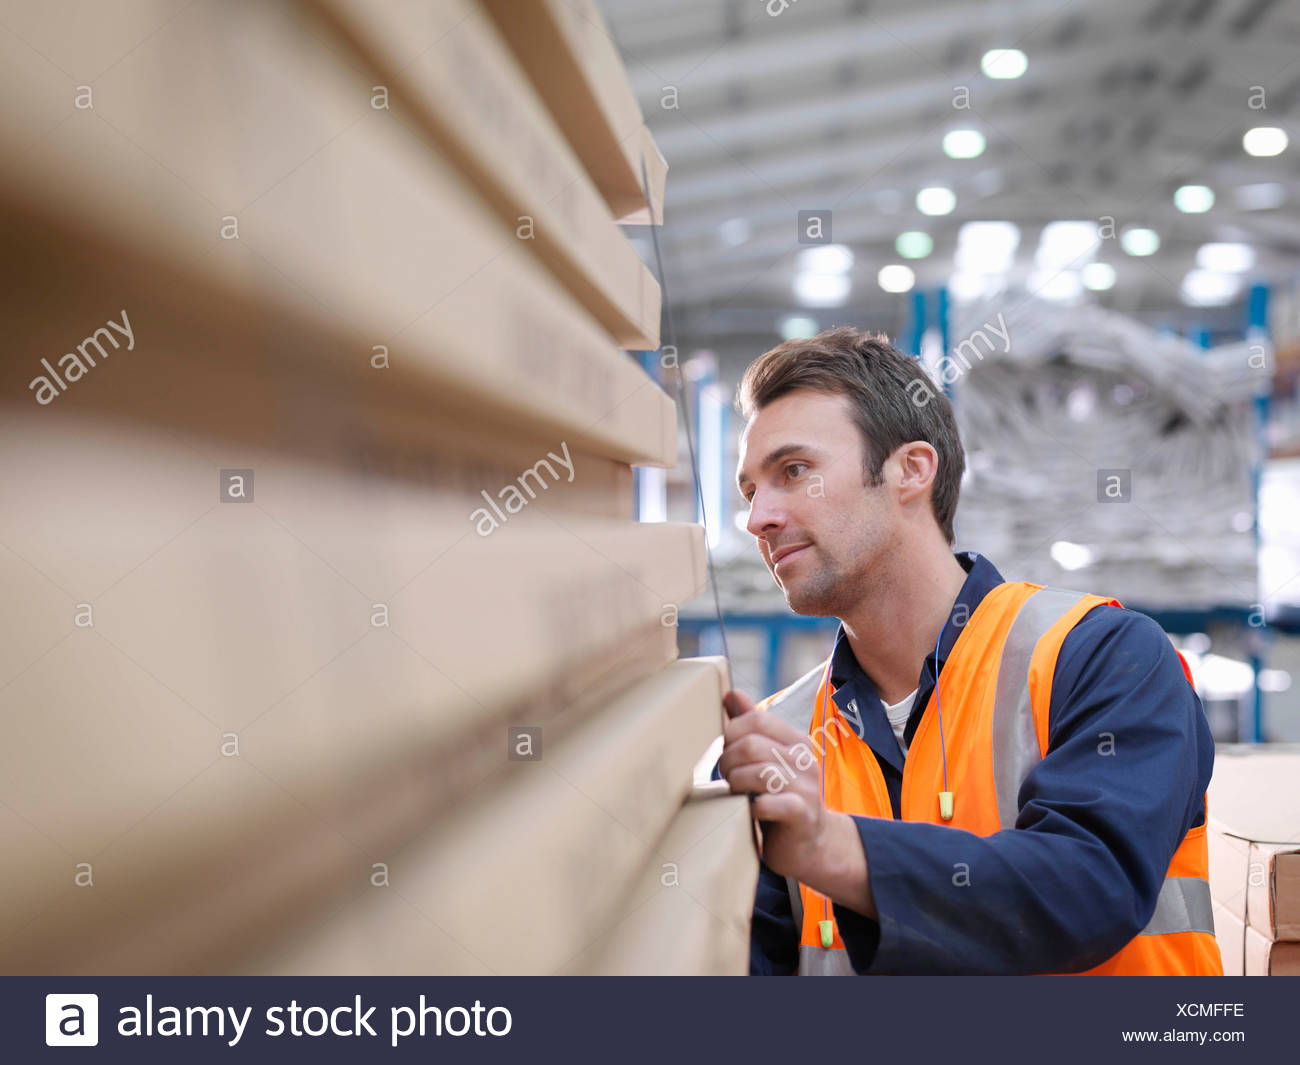 Worker Inspecting Product In Warehouse - Stock Image